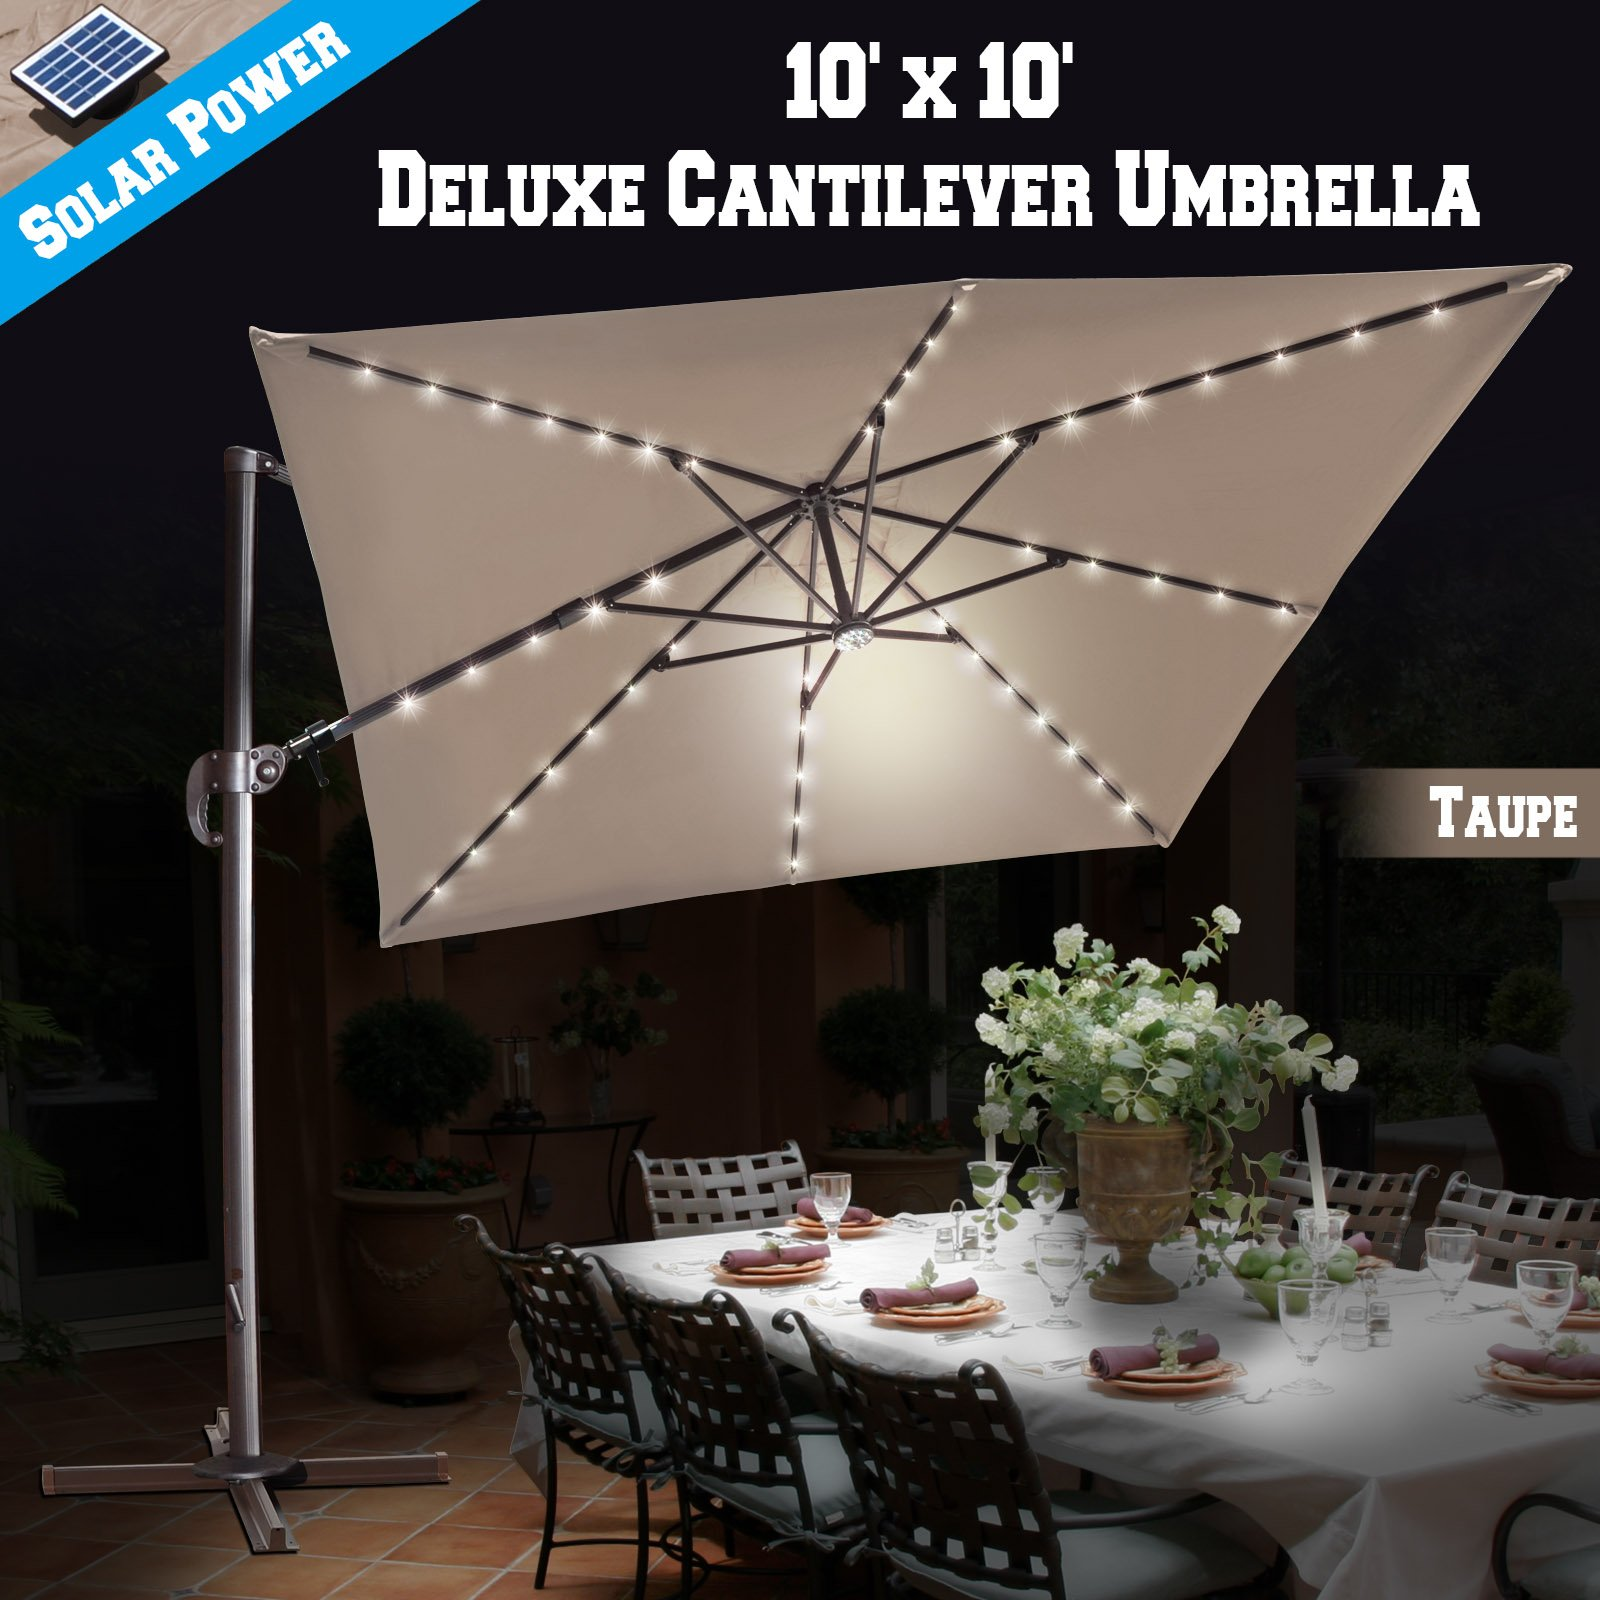 BenefitUSA 10'x10' Hanging Offset Roma Umbrella Solar Power LED Deluxe Outdoor Umbrella 360 Rotation Patio Sunshade Cantilever Crank with Protect Cover (Taupe)